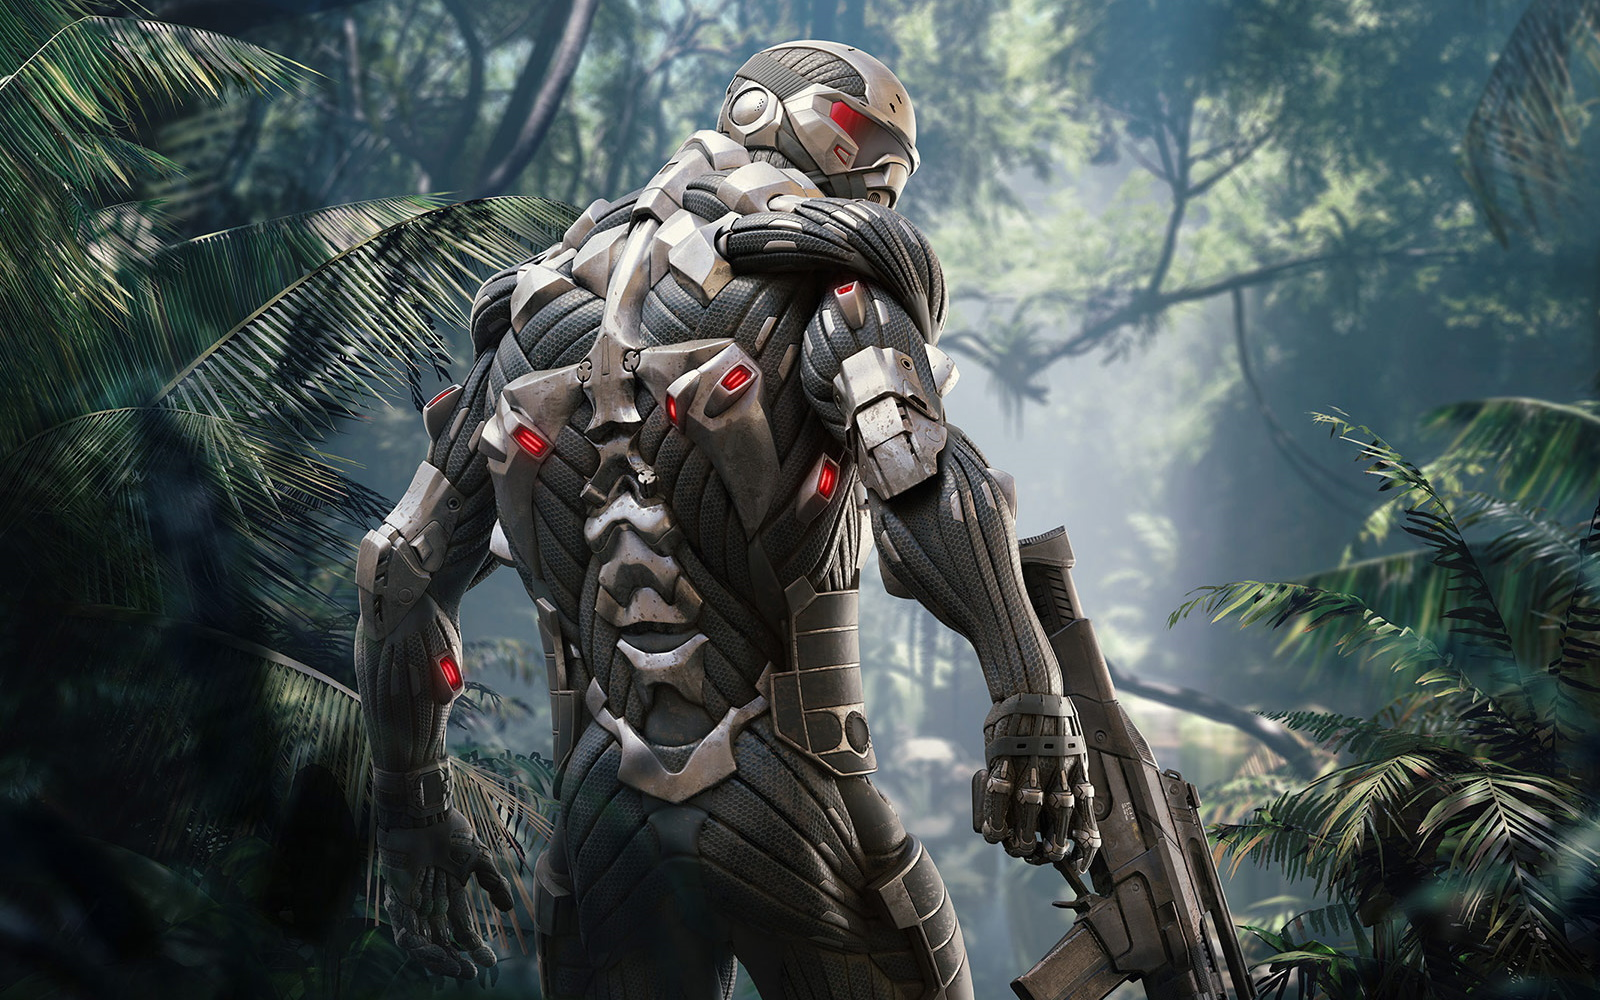 Original Crysis Is Getting Remastered